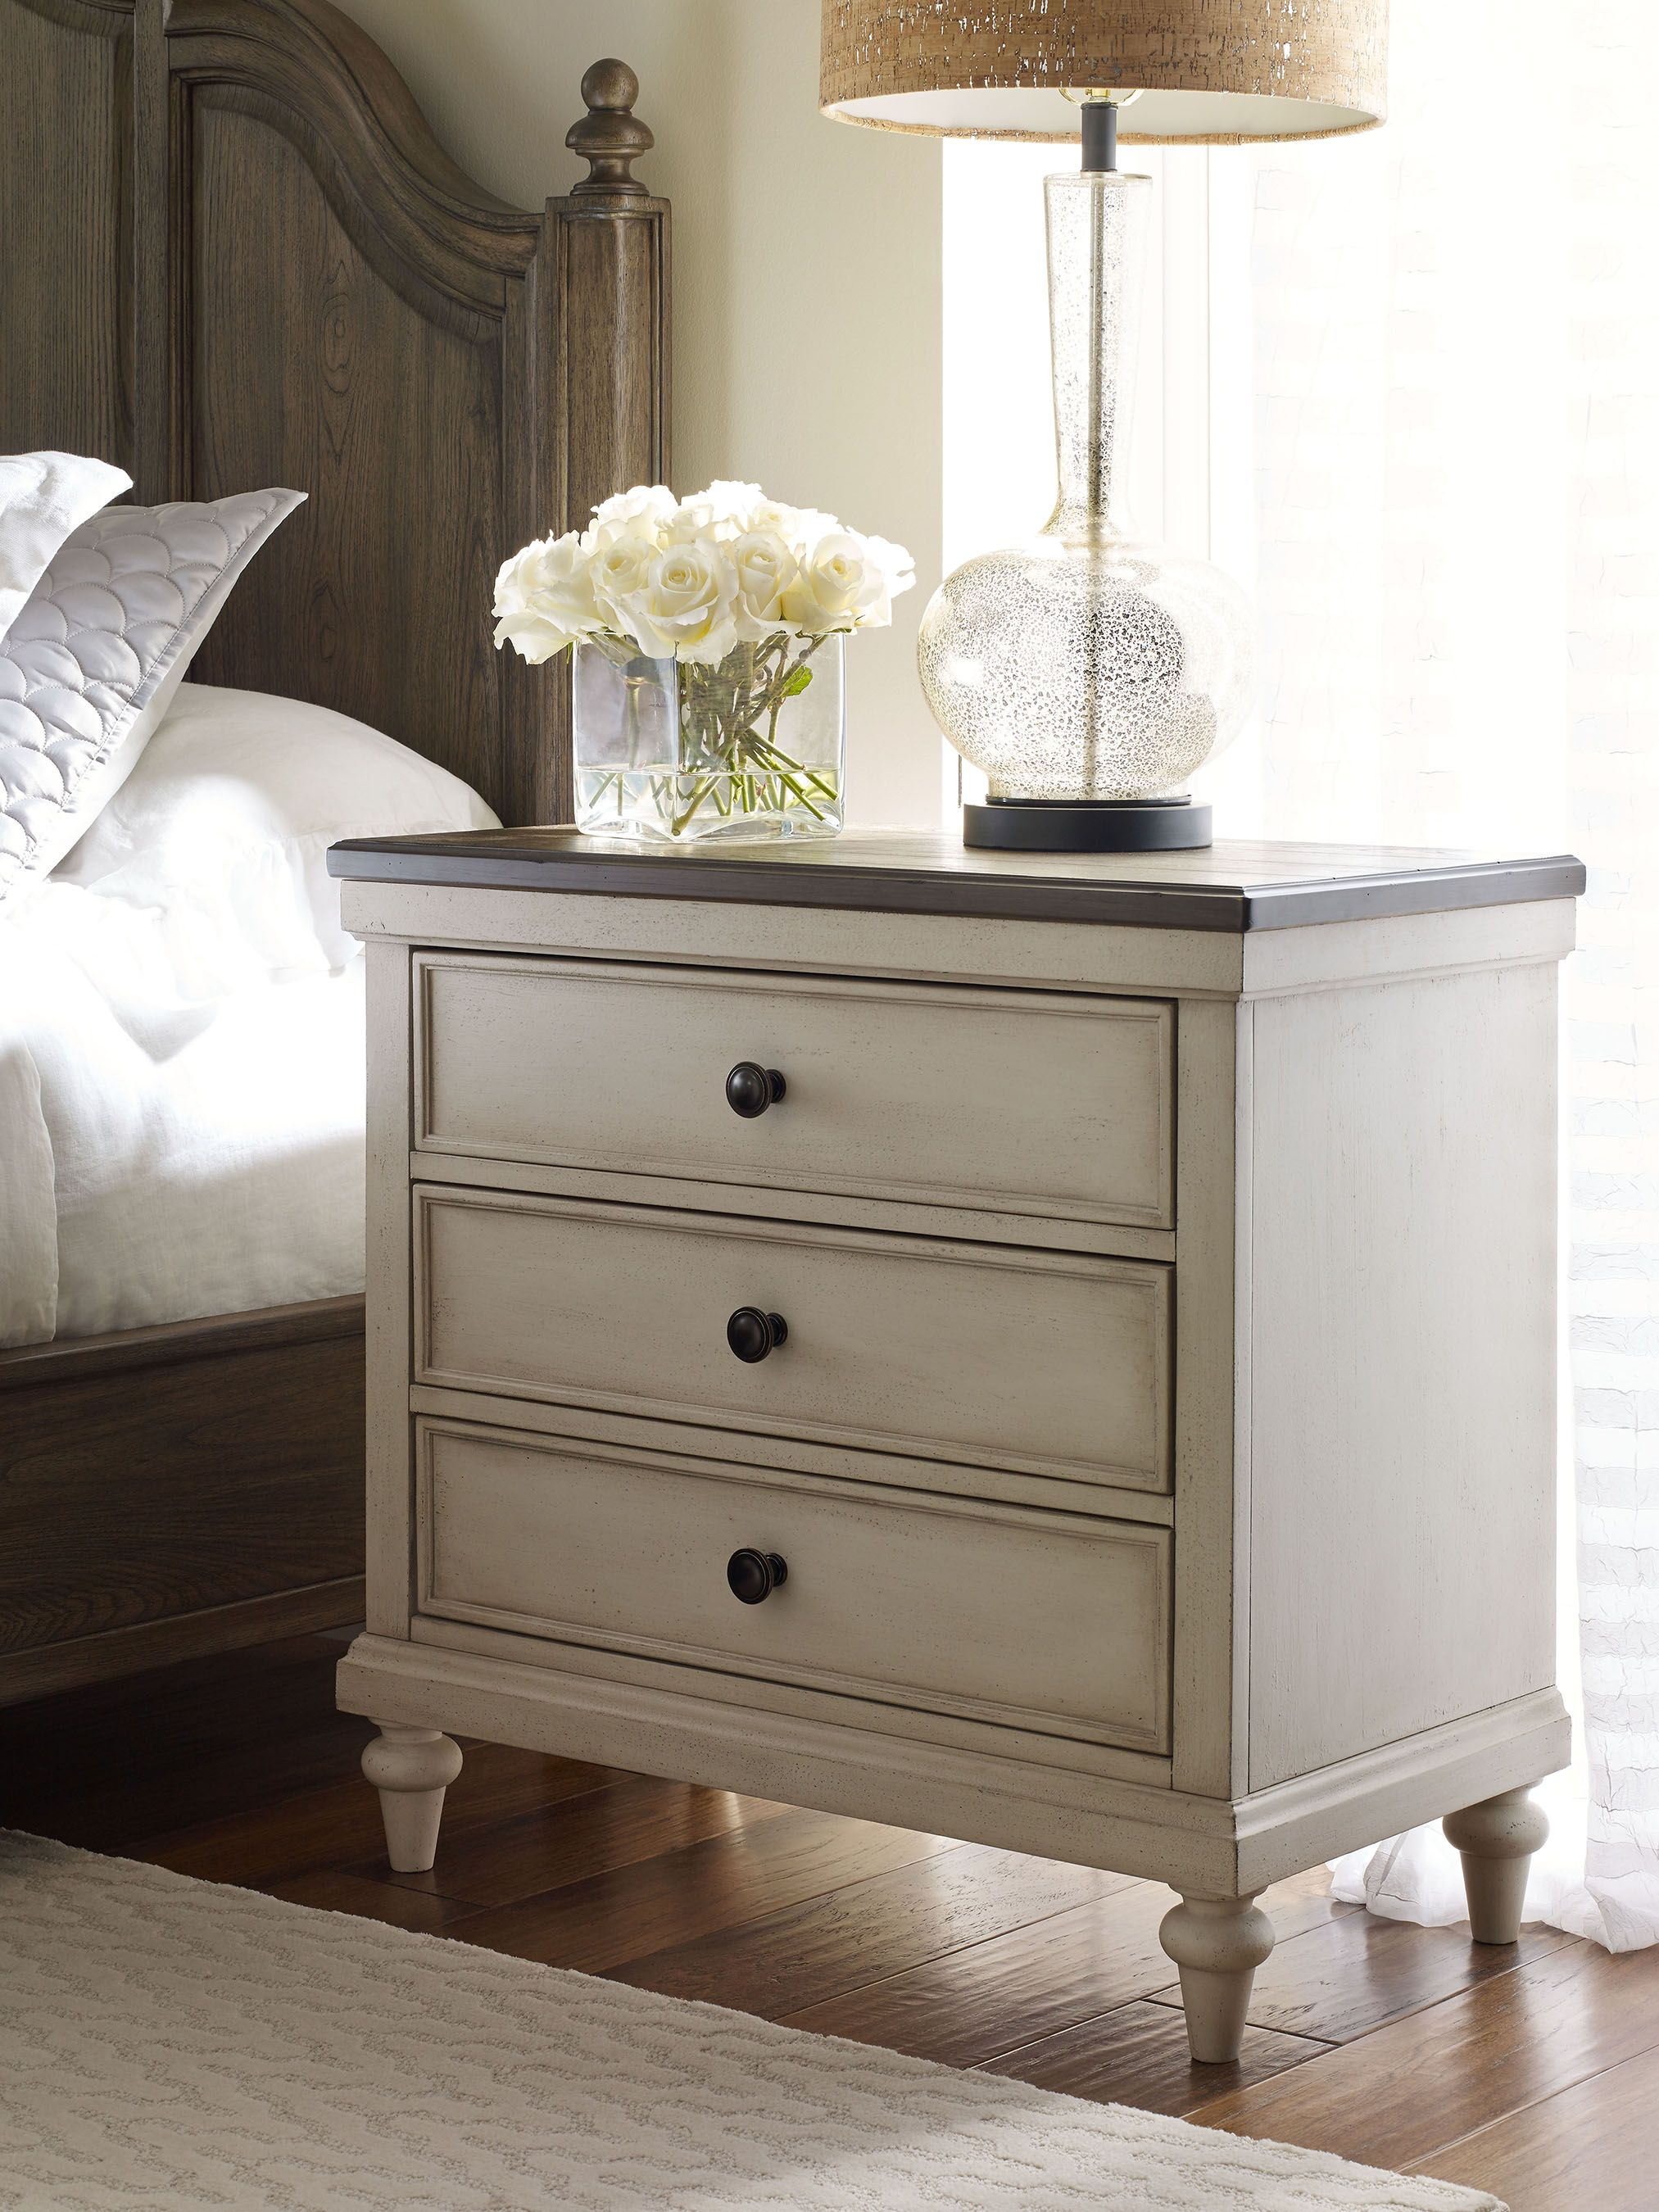 Brookhaven Nightstand Vintage Linen With Dark Elm Top By Legacy Classic Furniture Homedecor Bedroom Nightstand Decor Furniture Bedroom Furniture Makeover